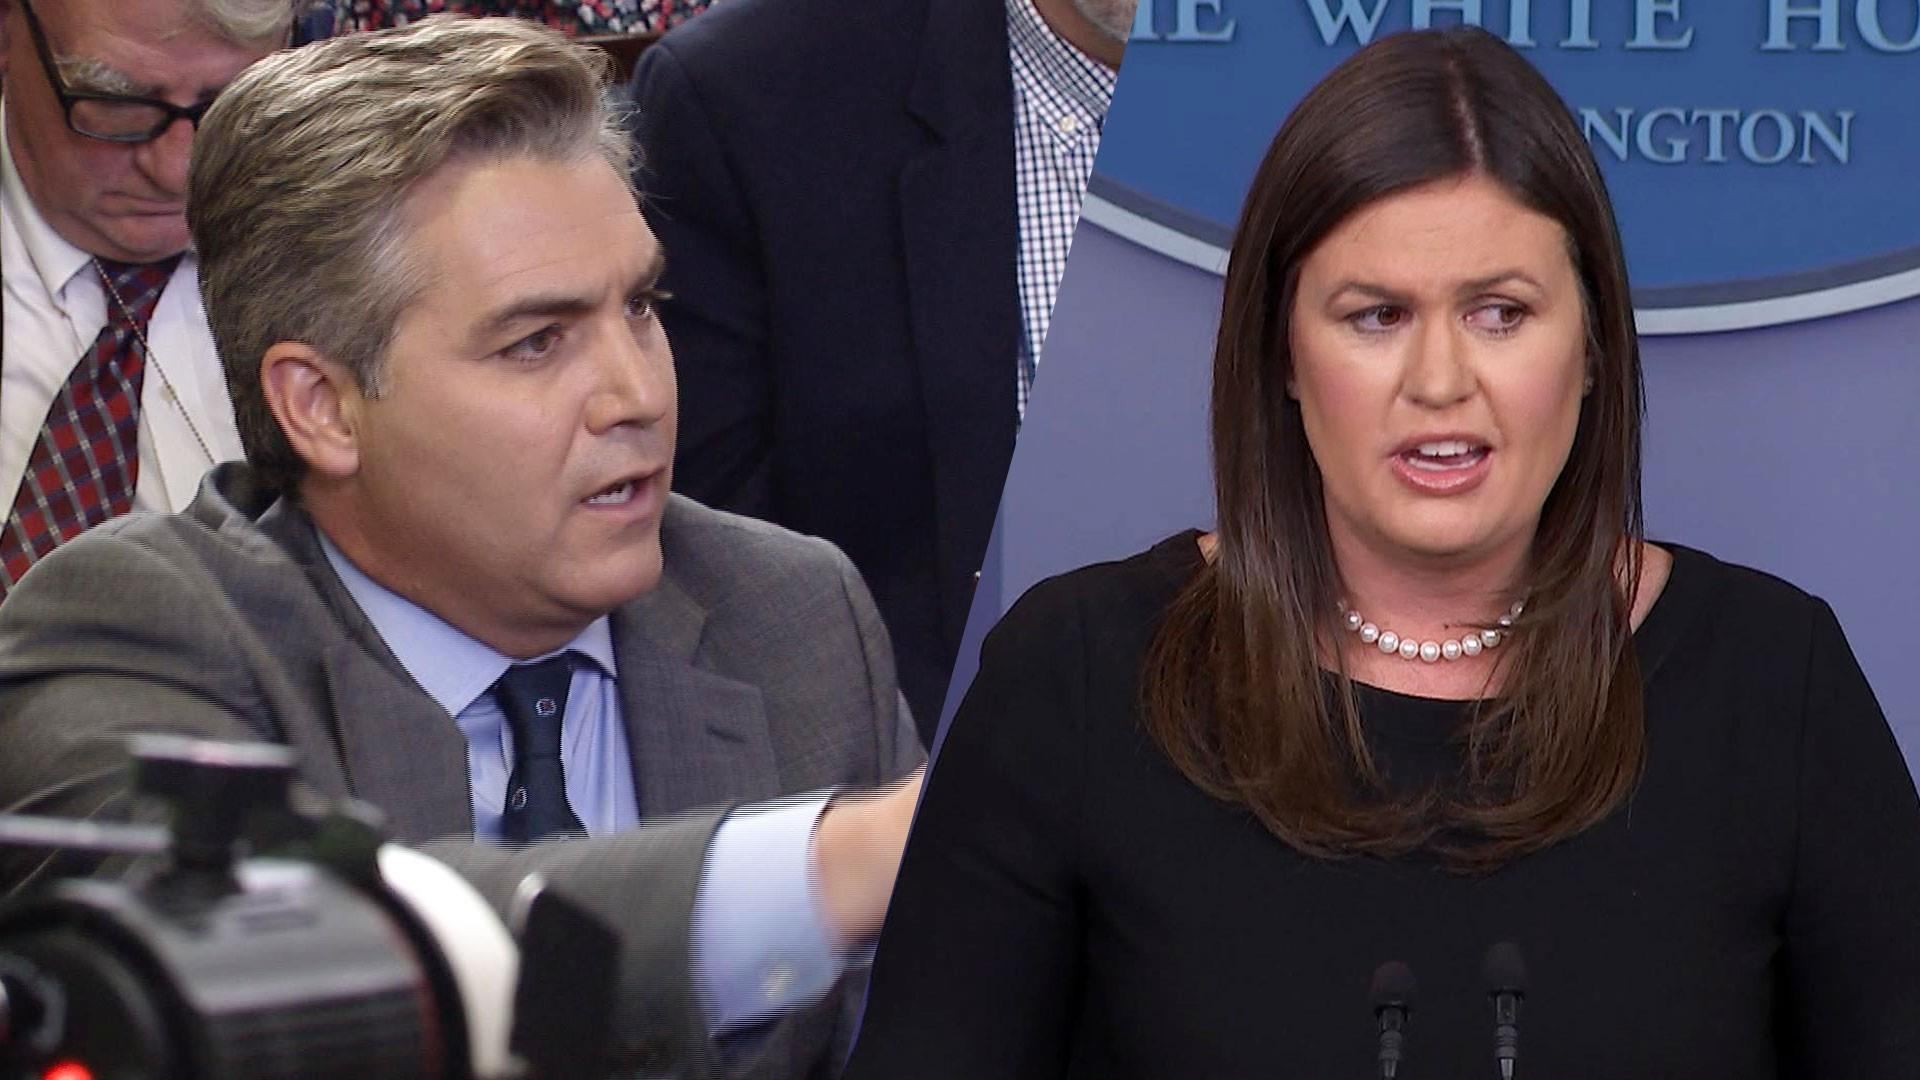 Sarah Sanders refuses to say the press is not 'enemy of the people'